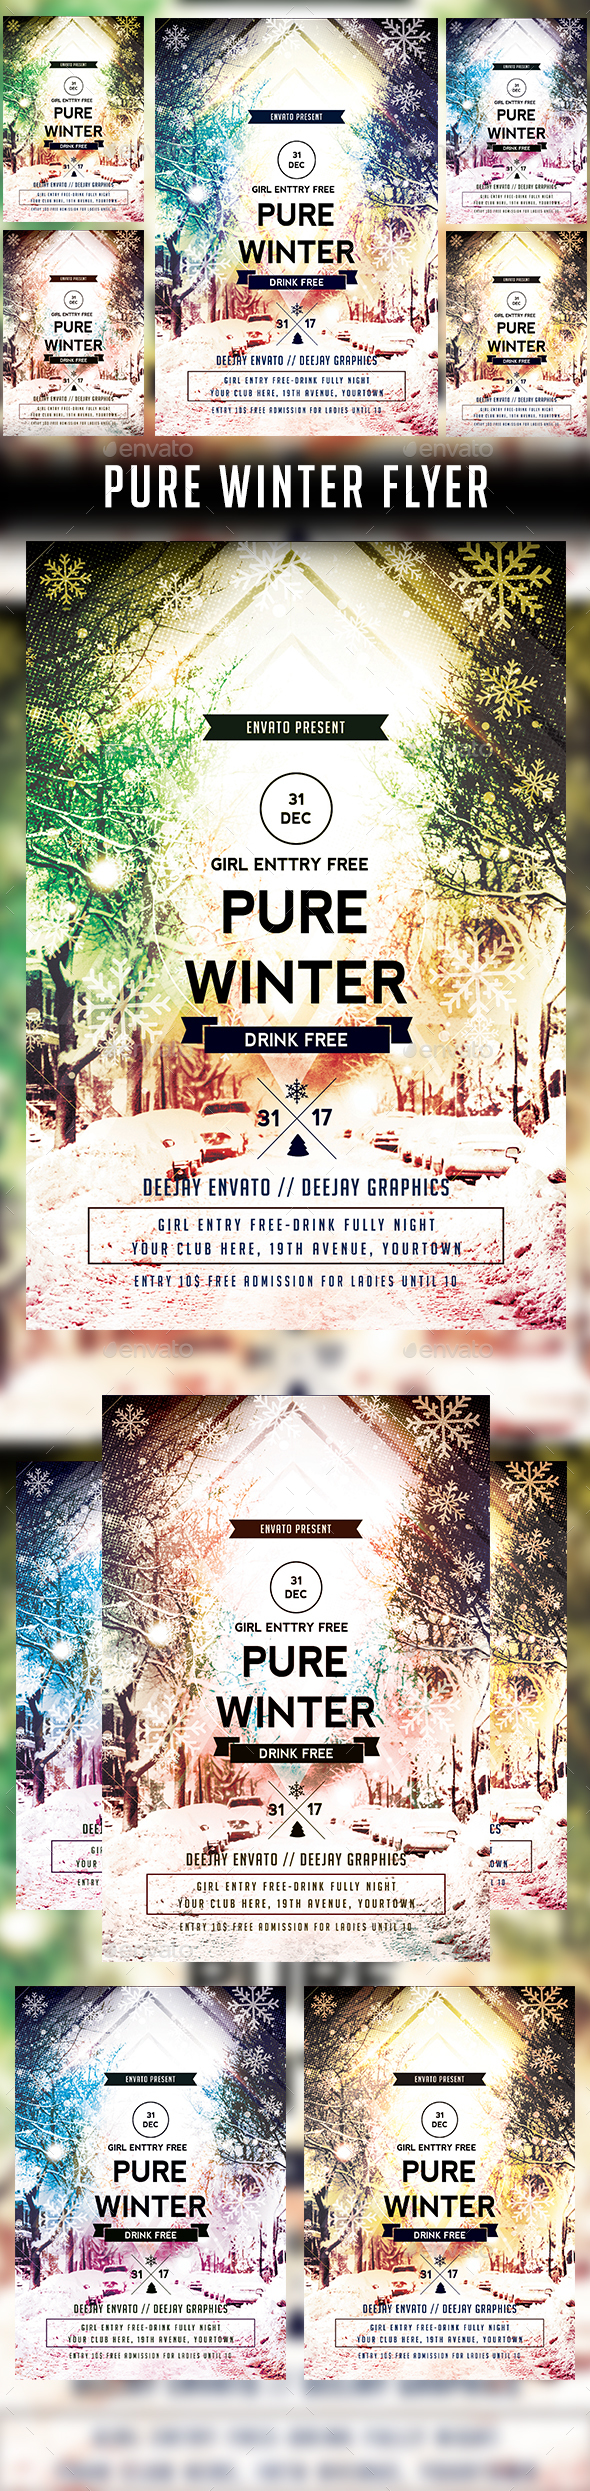 Pure Winter Flyer Template - Clubs & Parties Events